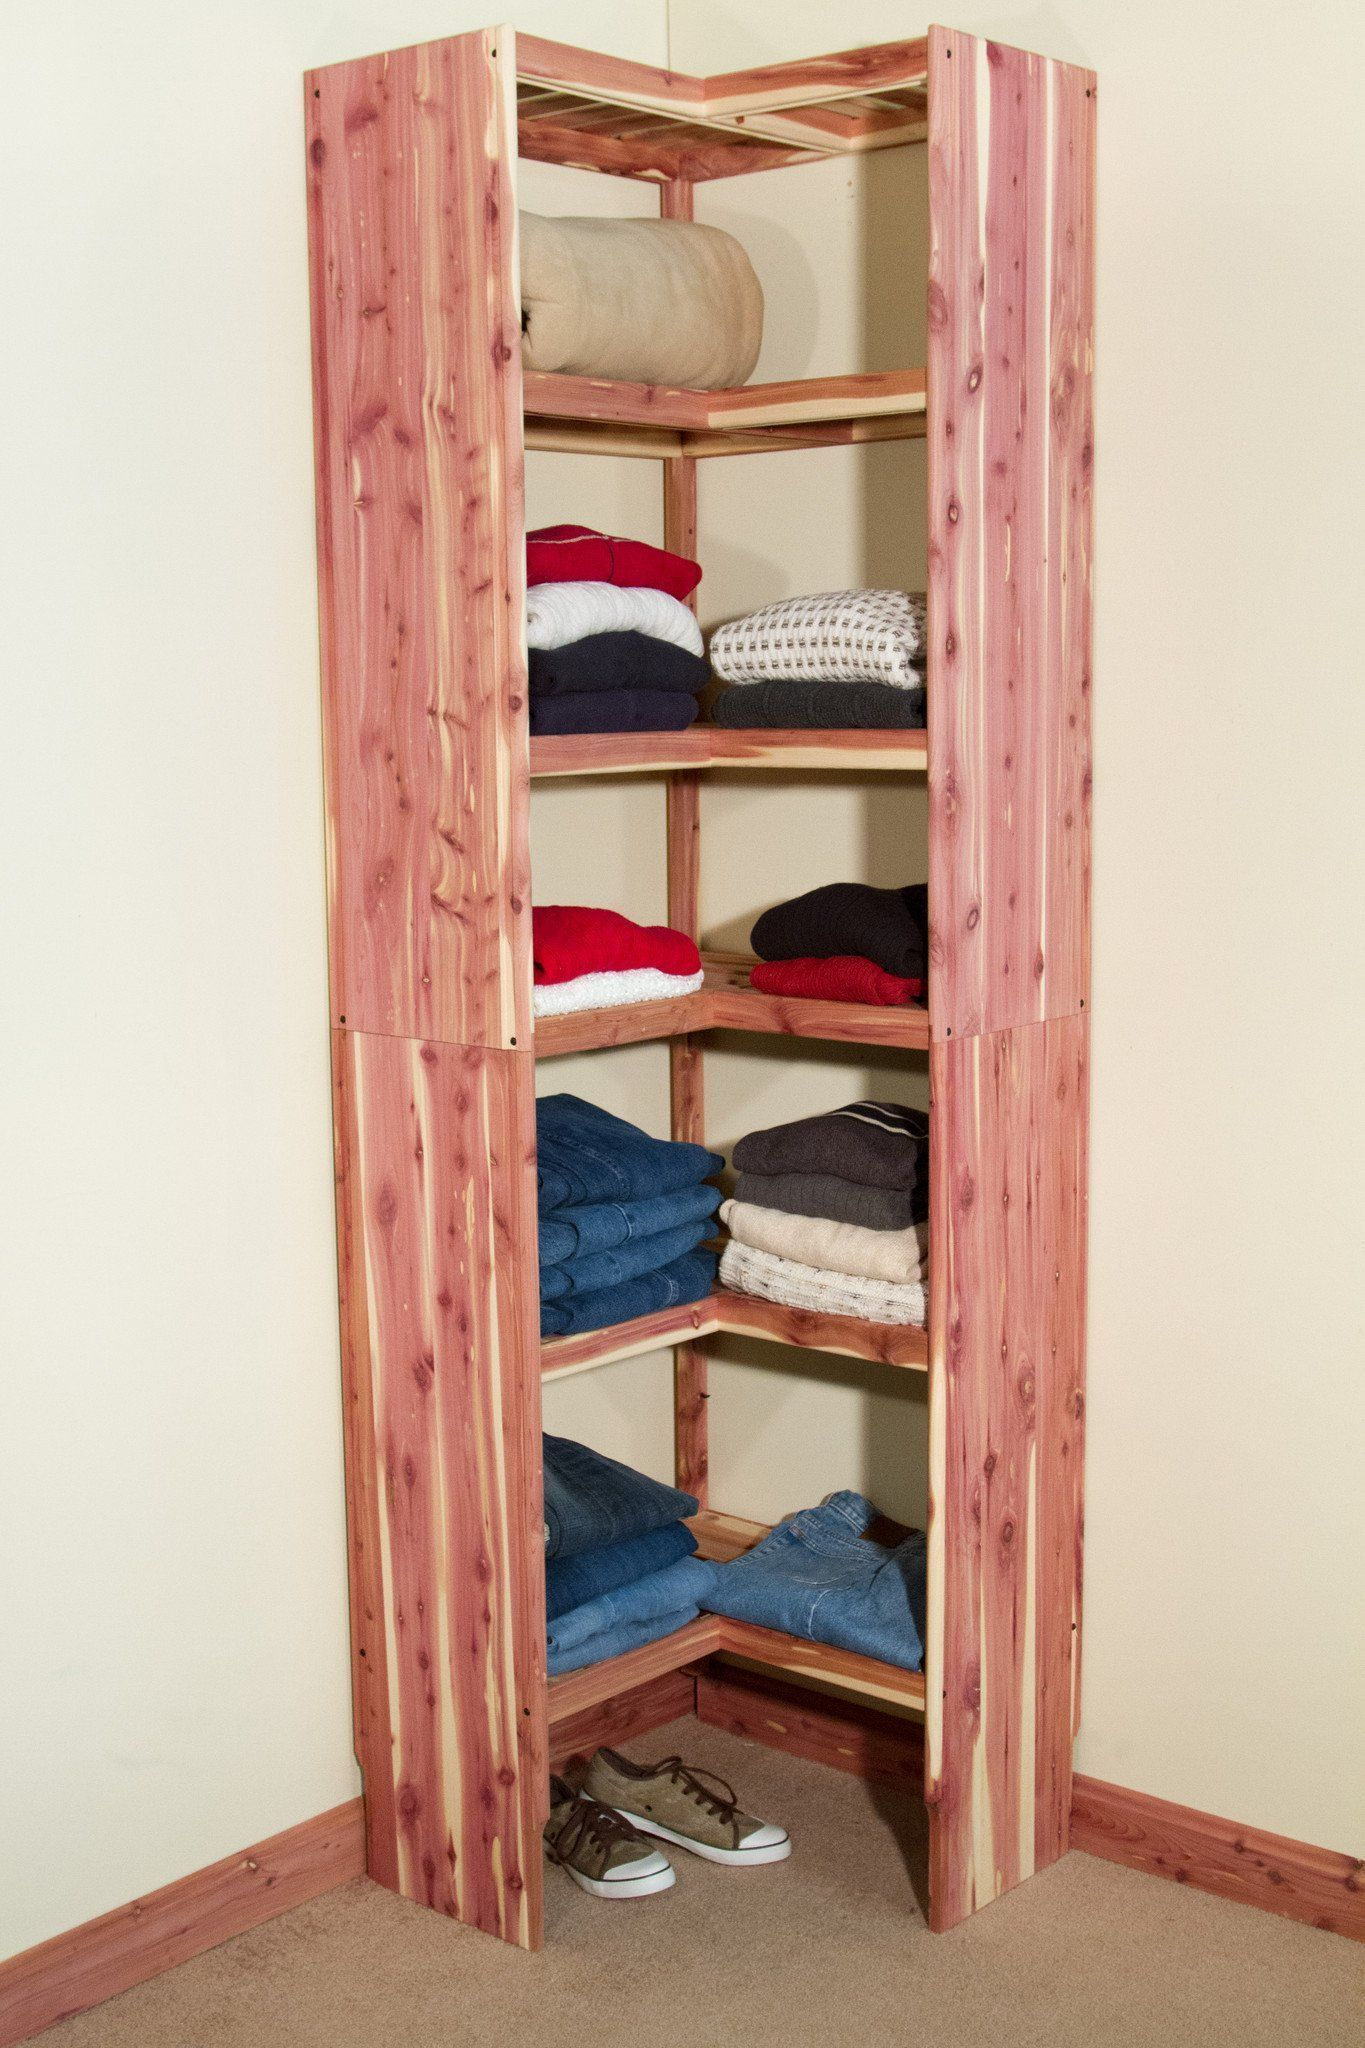 Solid aromatic red cedar organization system for your closet or